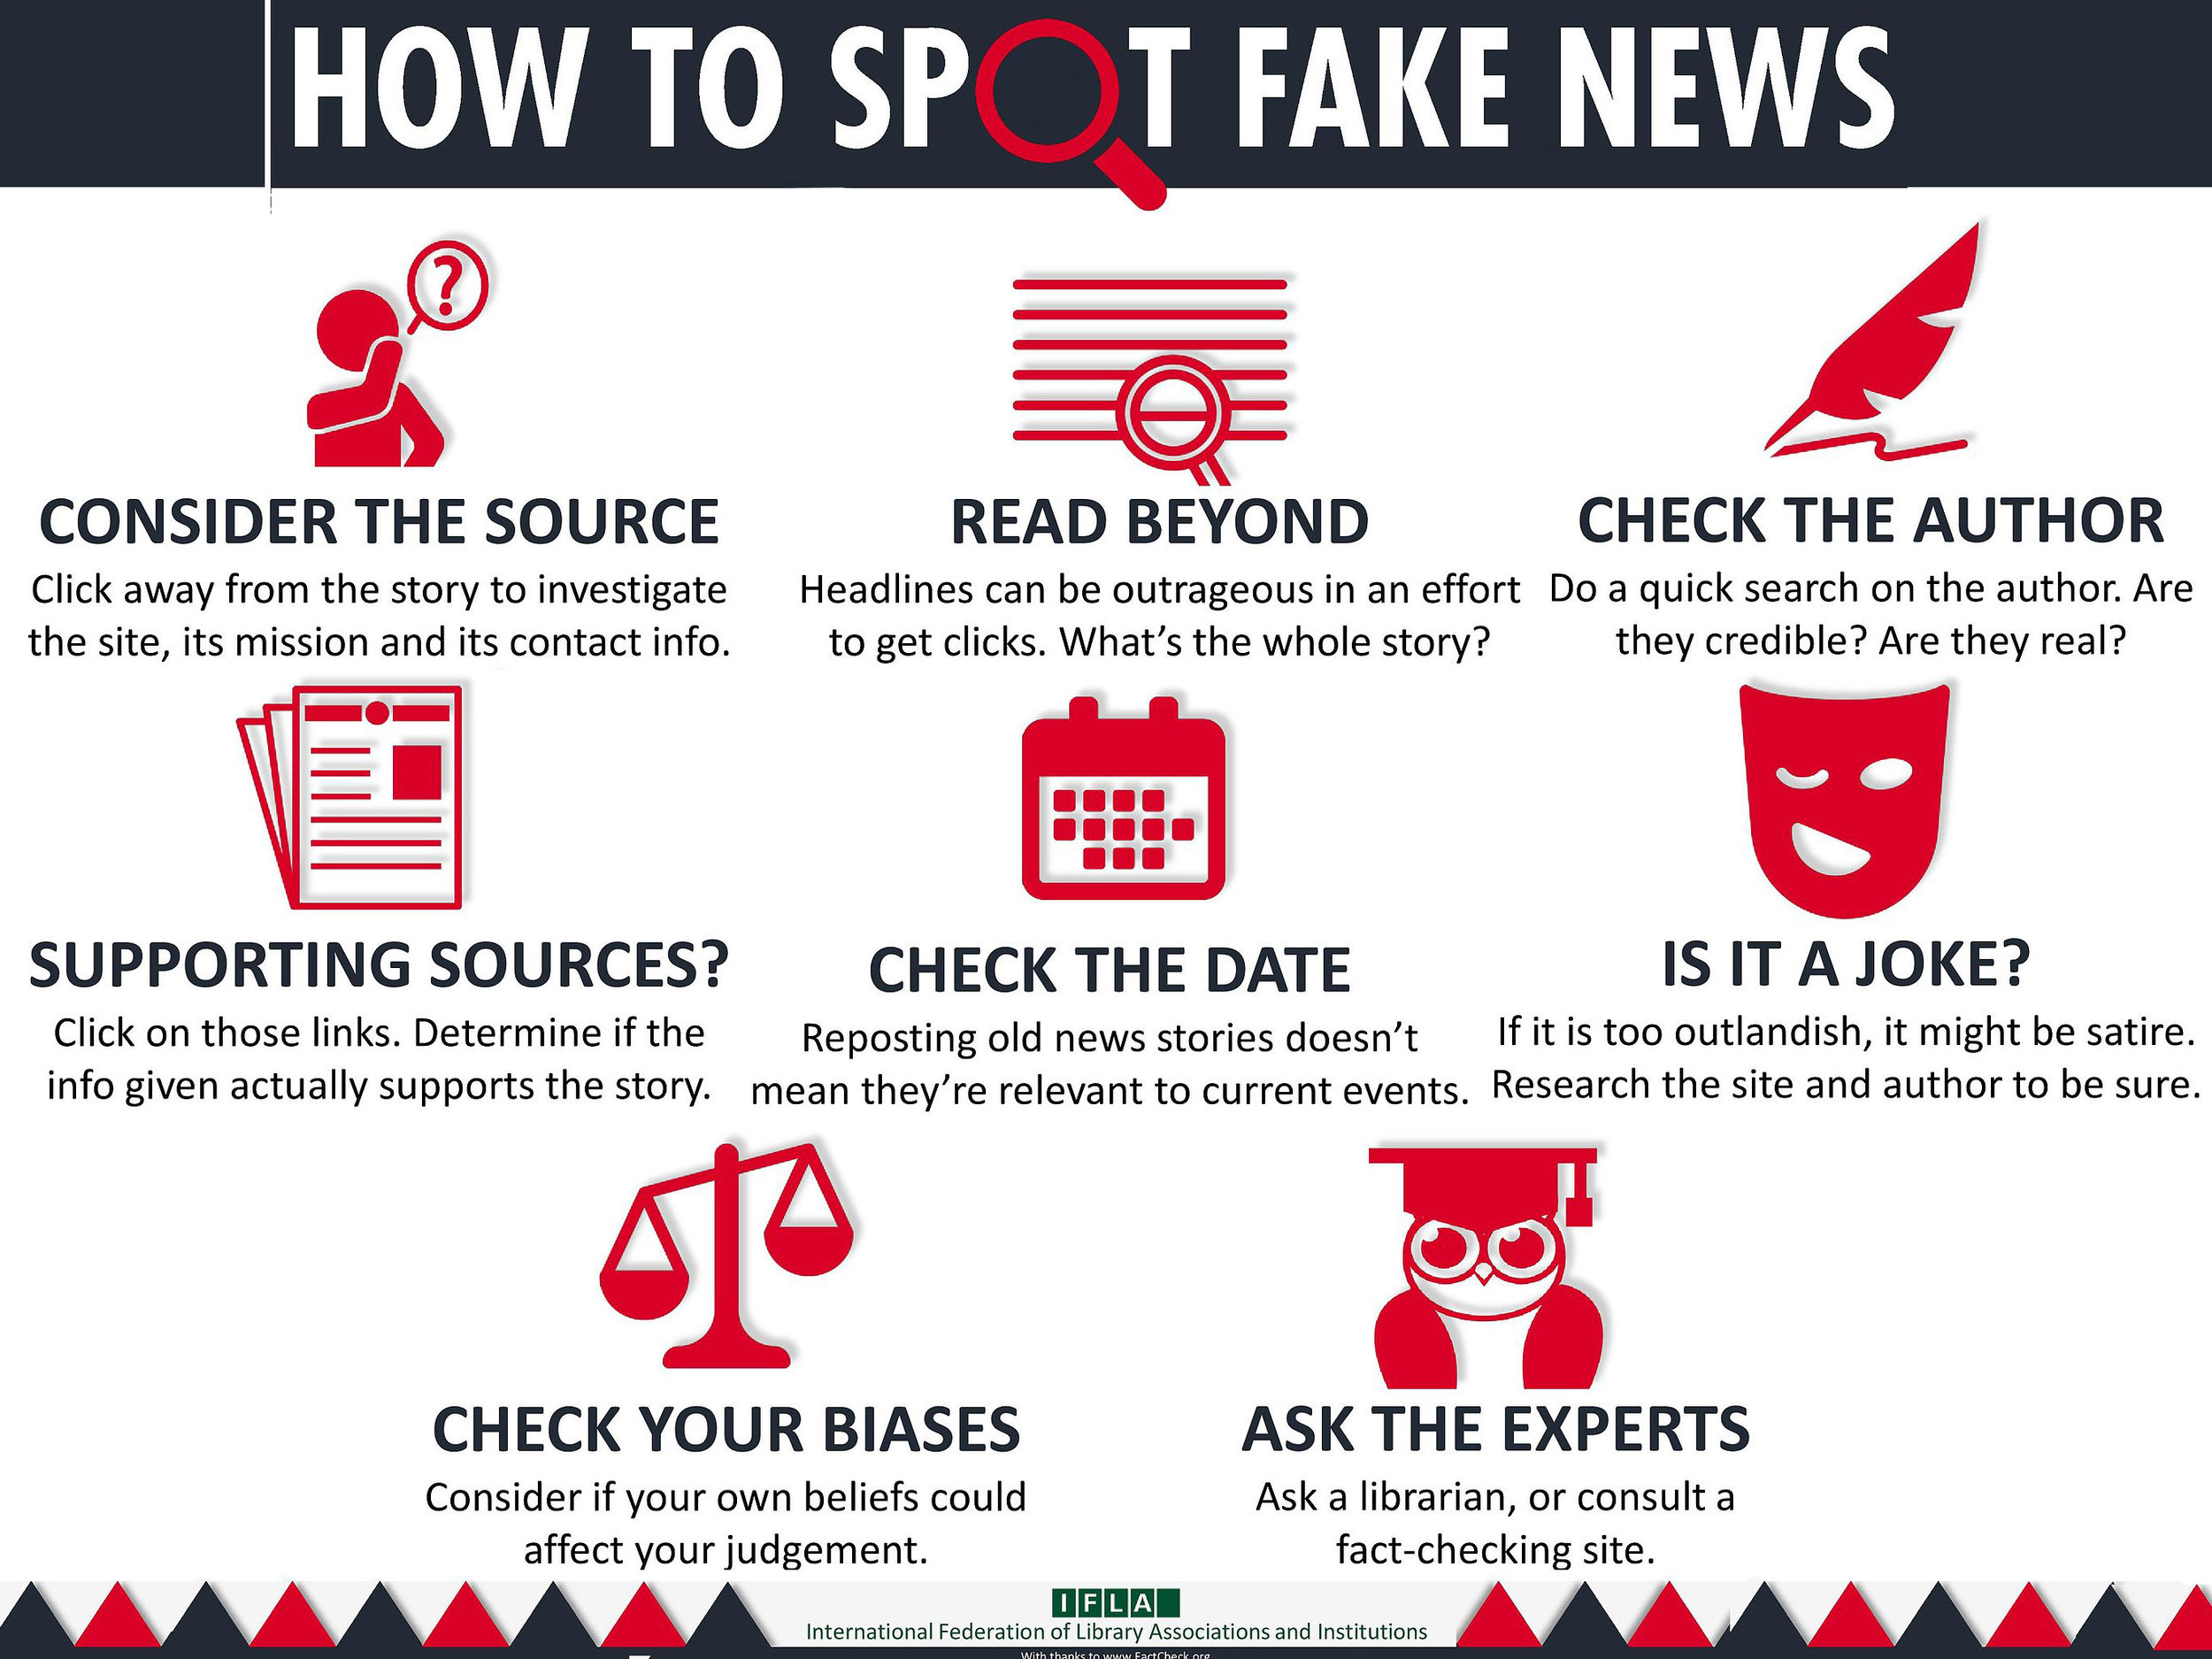 how-to-spot-fake-newsHORIZONTAL.jpg